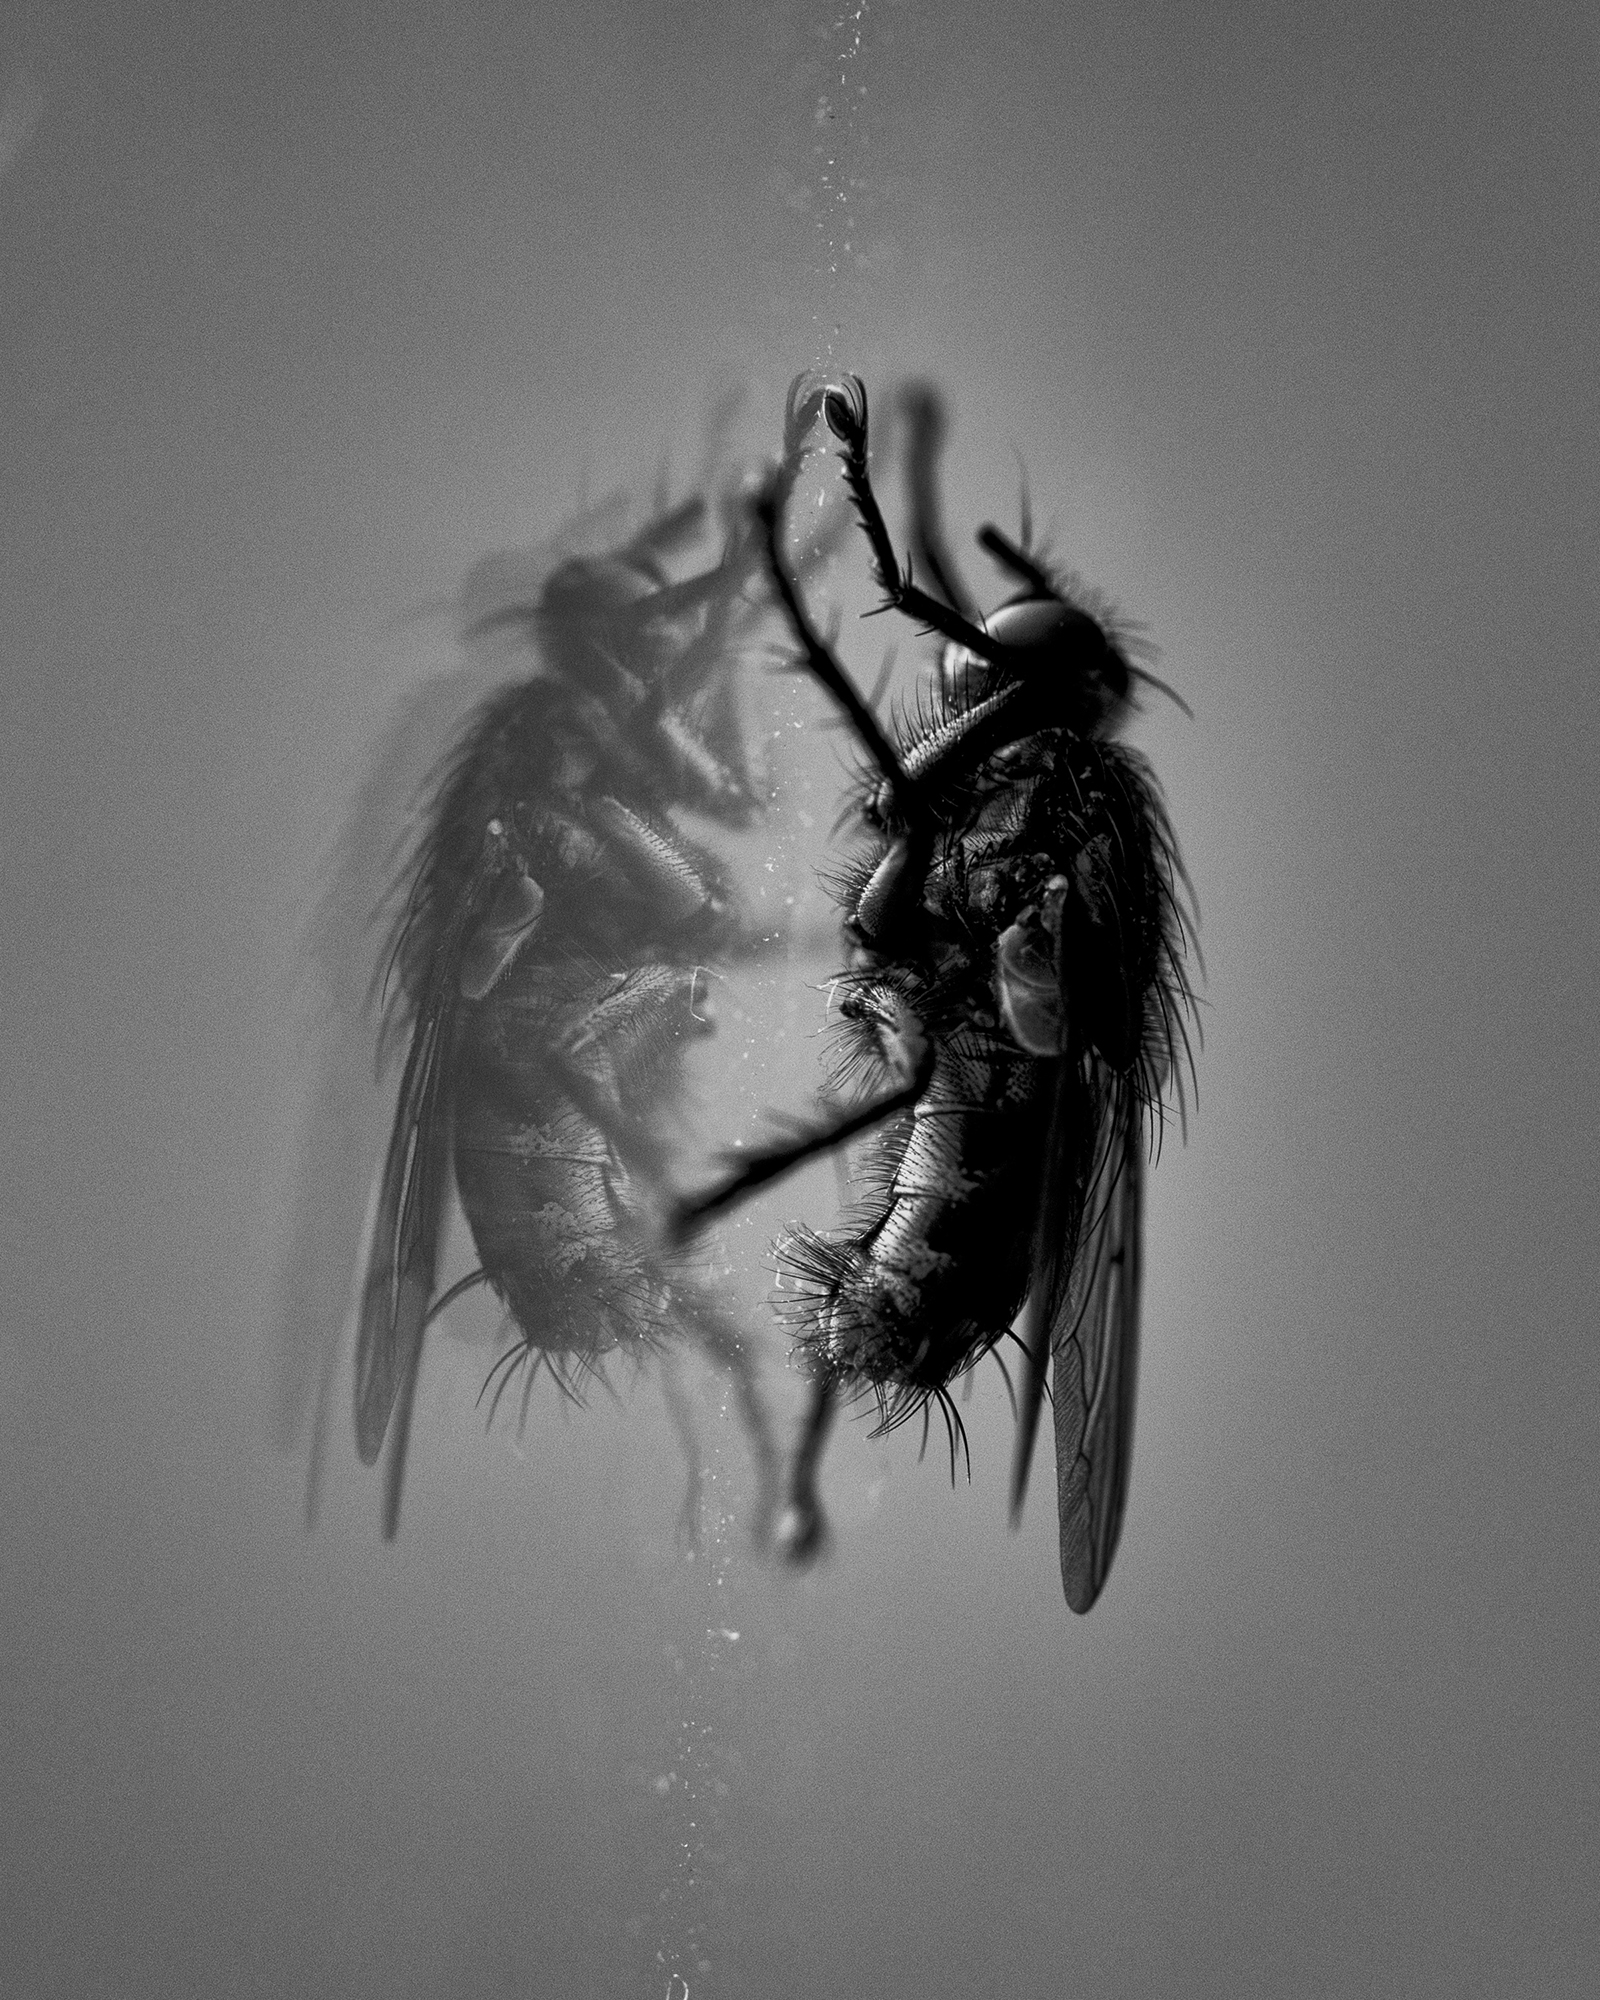 A house fly is reflection in a rain-streaked windowpane.